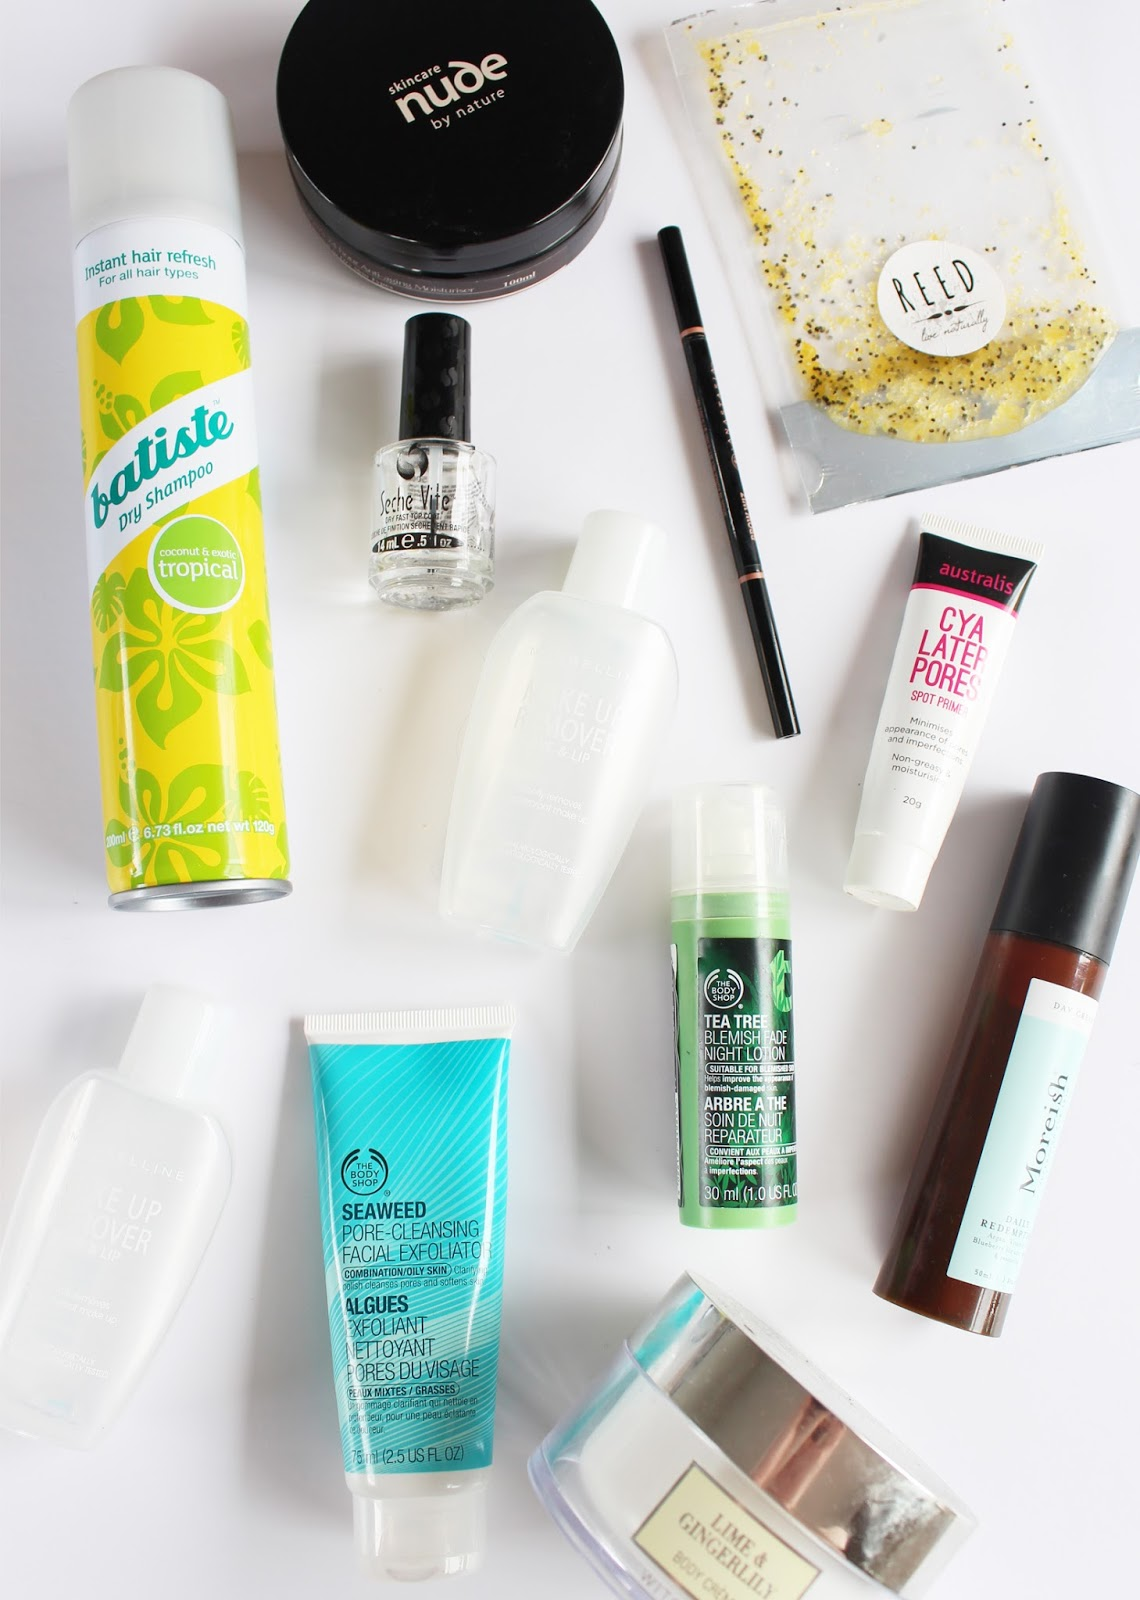 EMPTIES | November '15 - Batiste, Nude By Nature, Seche Vite, Anastasia Beverly Hills, The Body Shop, Reed, Australis, Maybelline, Moreish - CassandraMyee